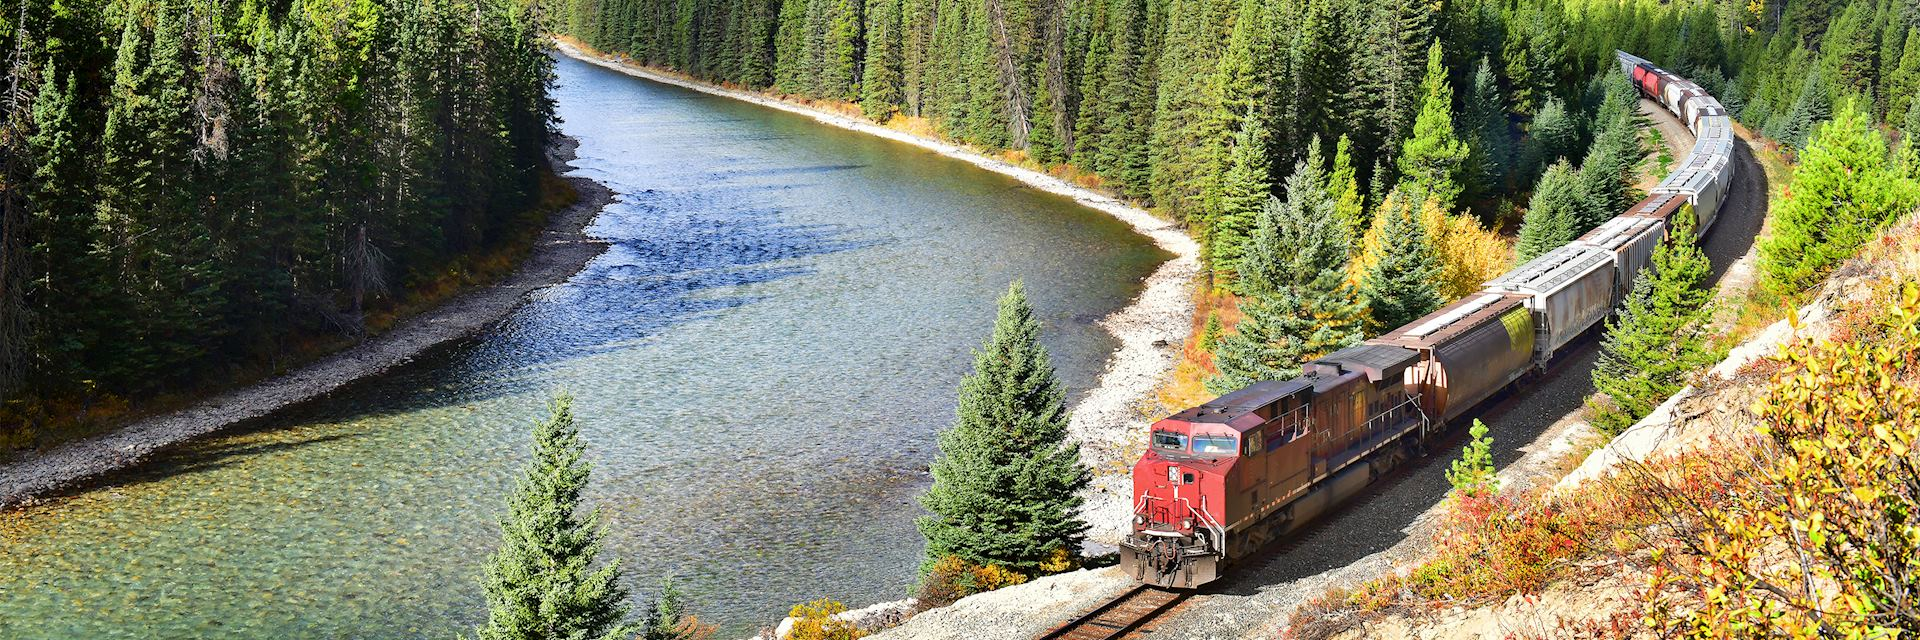 Canadian Pacific Railway in Banff National Park